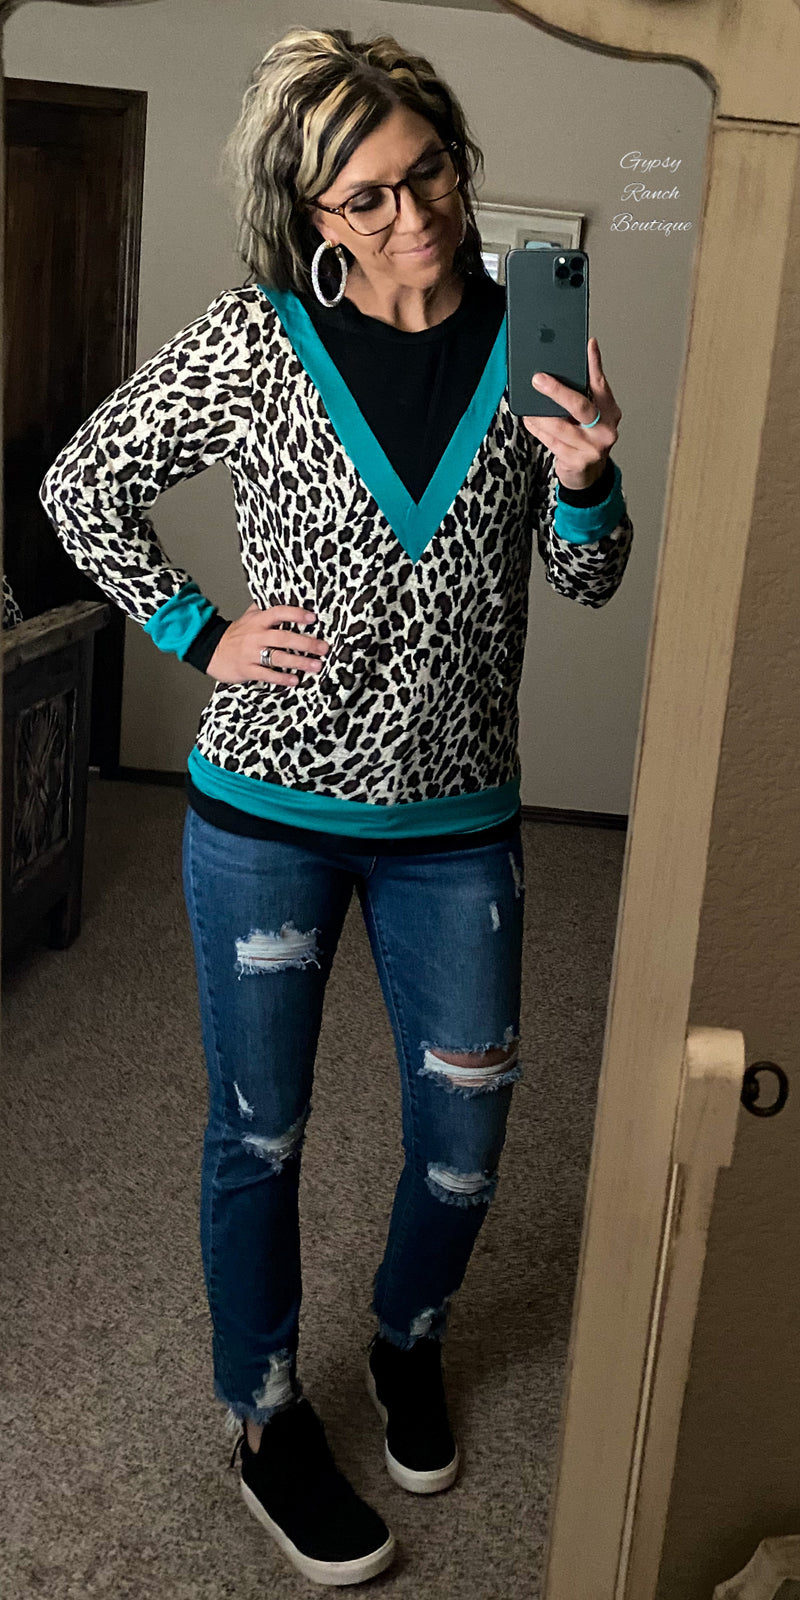 Timber Turquoise Leopard Top - Also in Plus Size